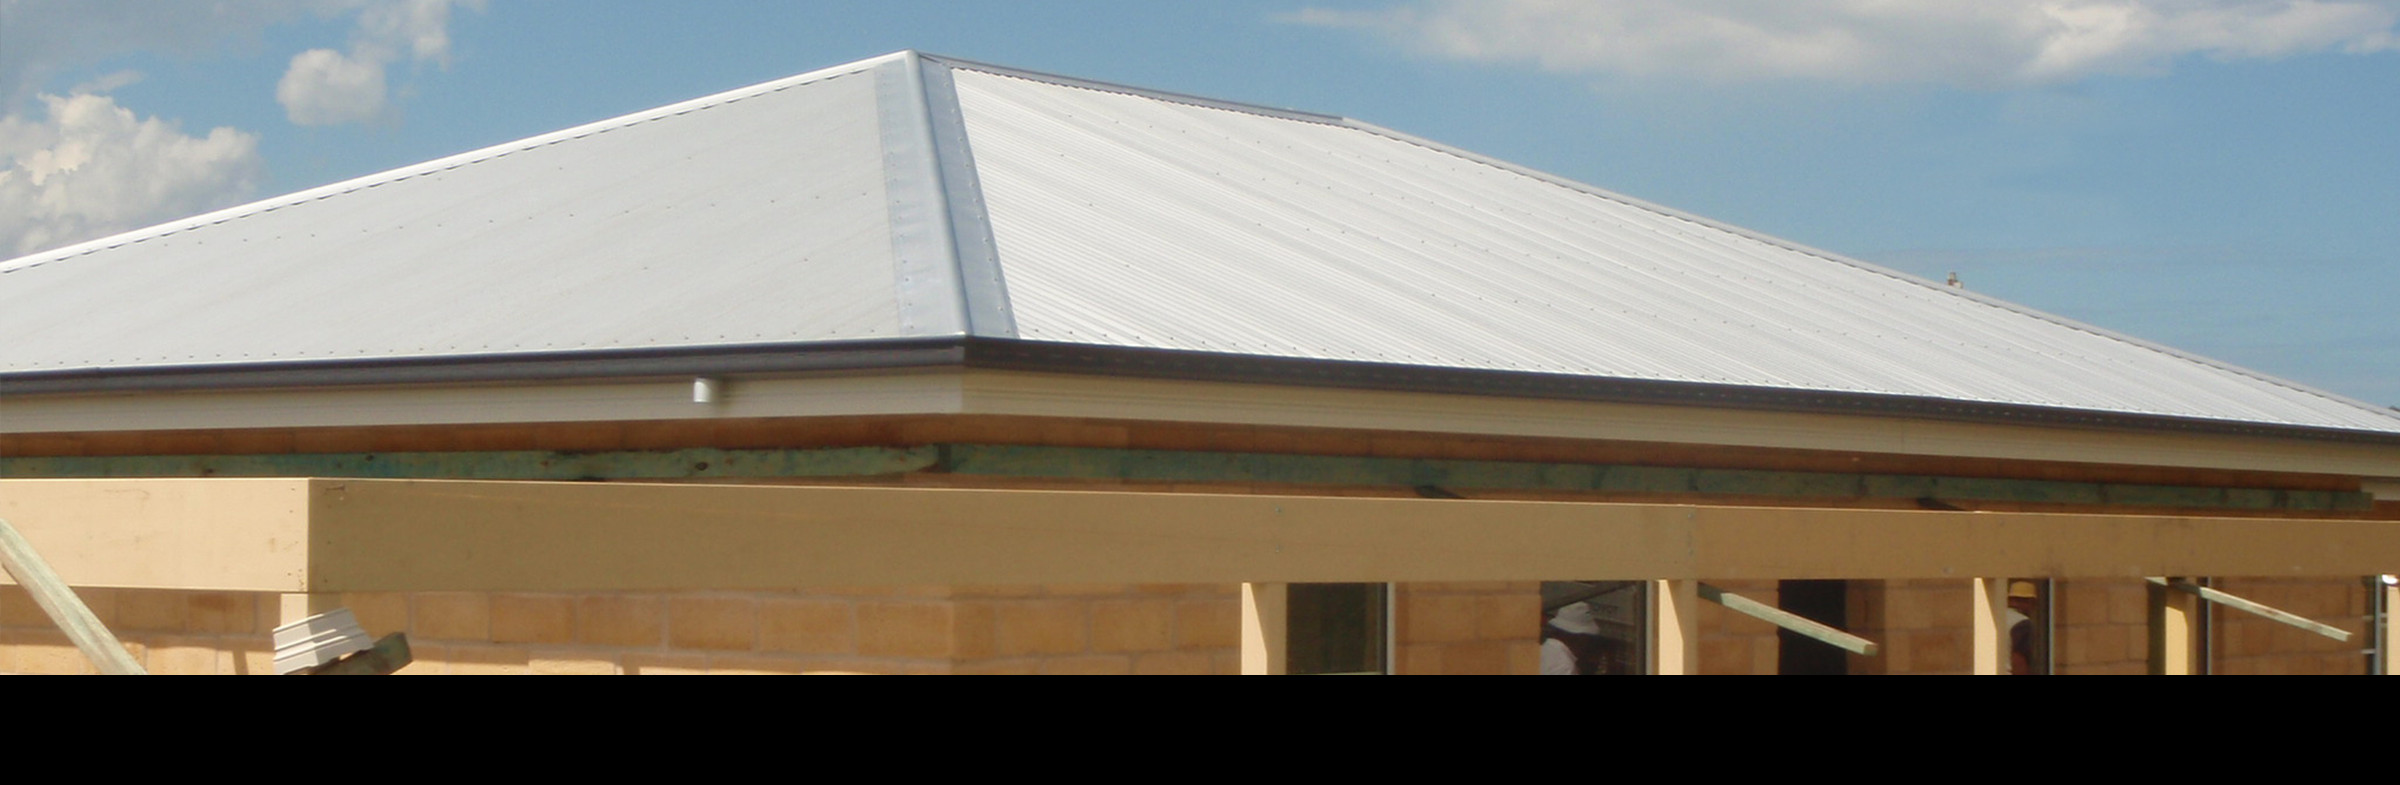 SKYLINE ROOFING NEWCASTLE 5